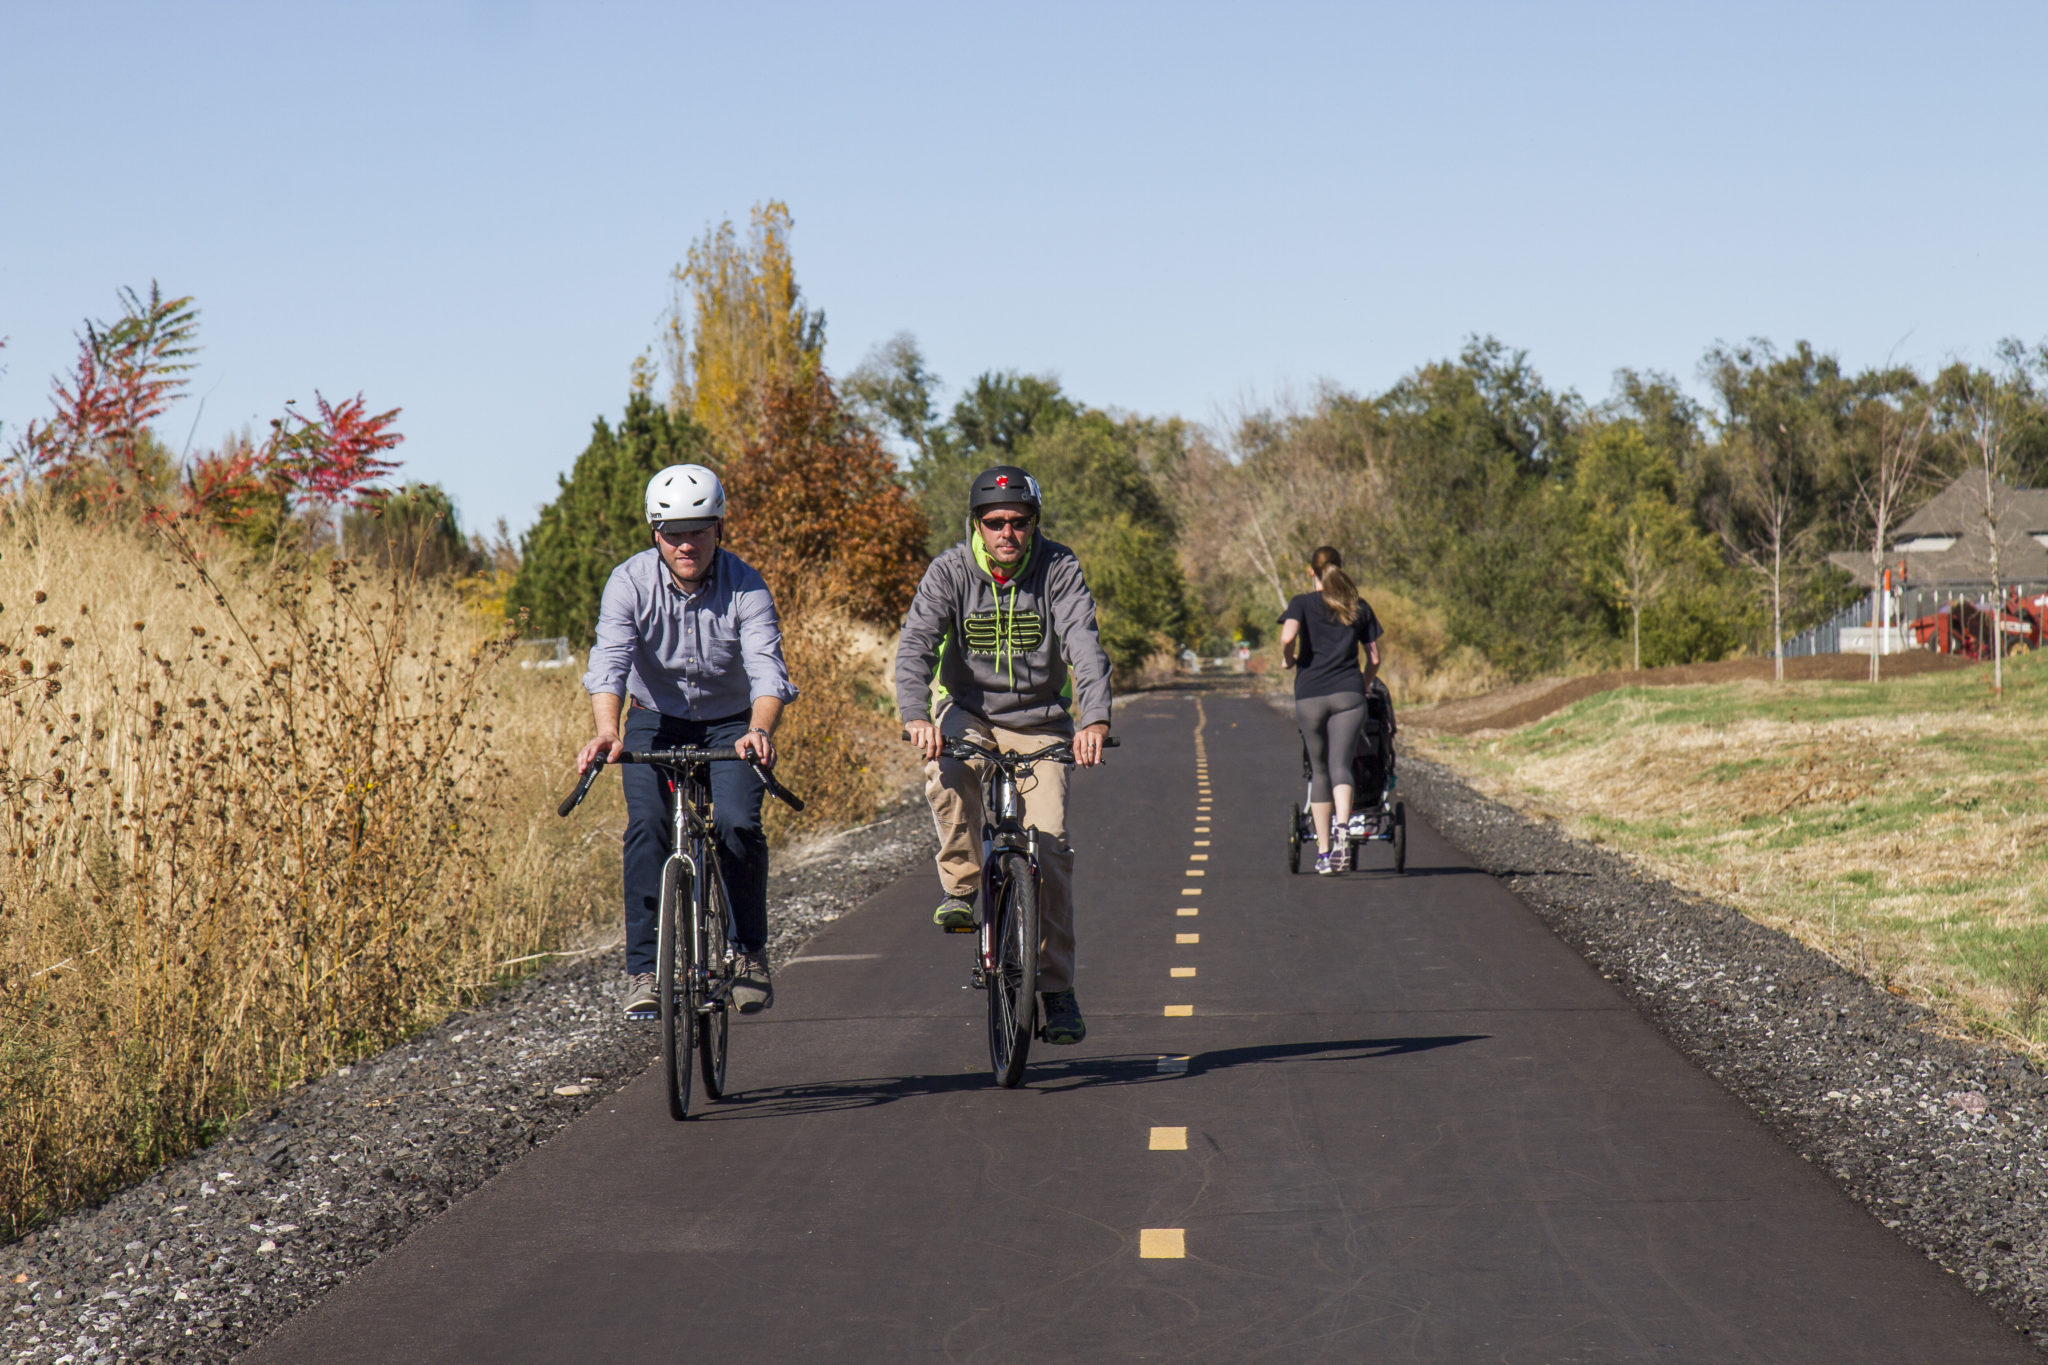 Bicyclists And A Jogger With A Stroller Utilize The Golden Spoke Trail Network.